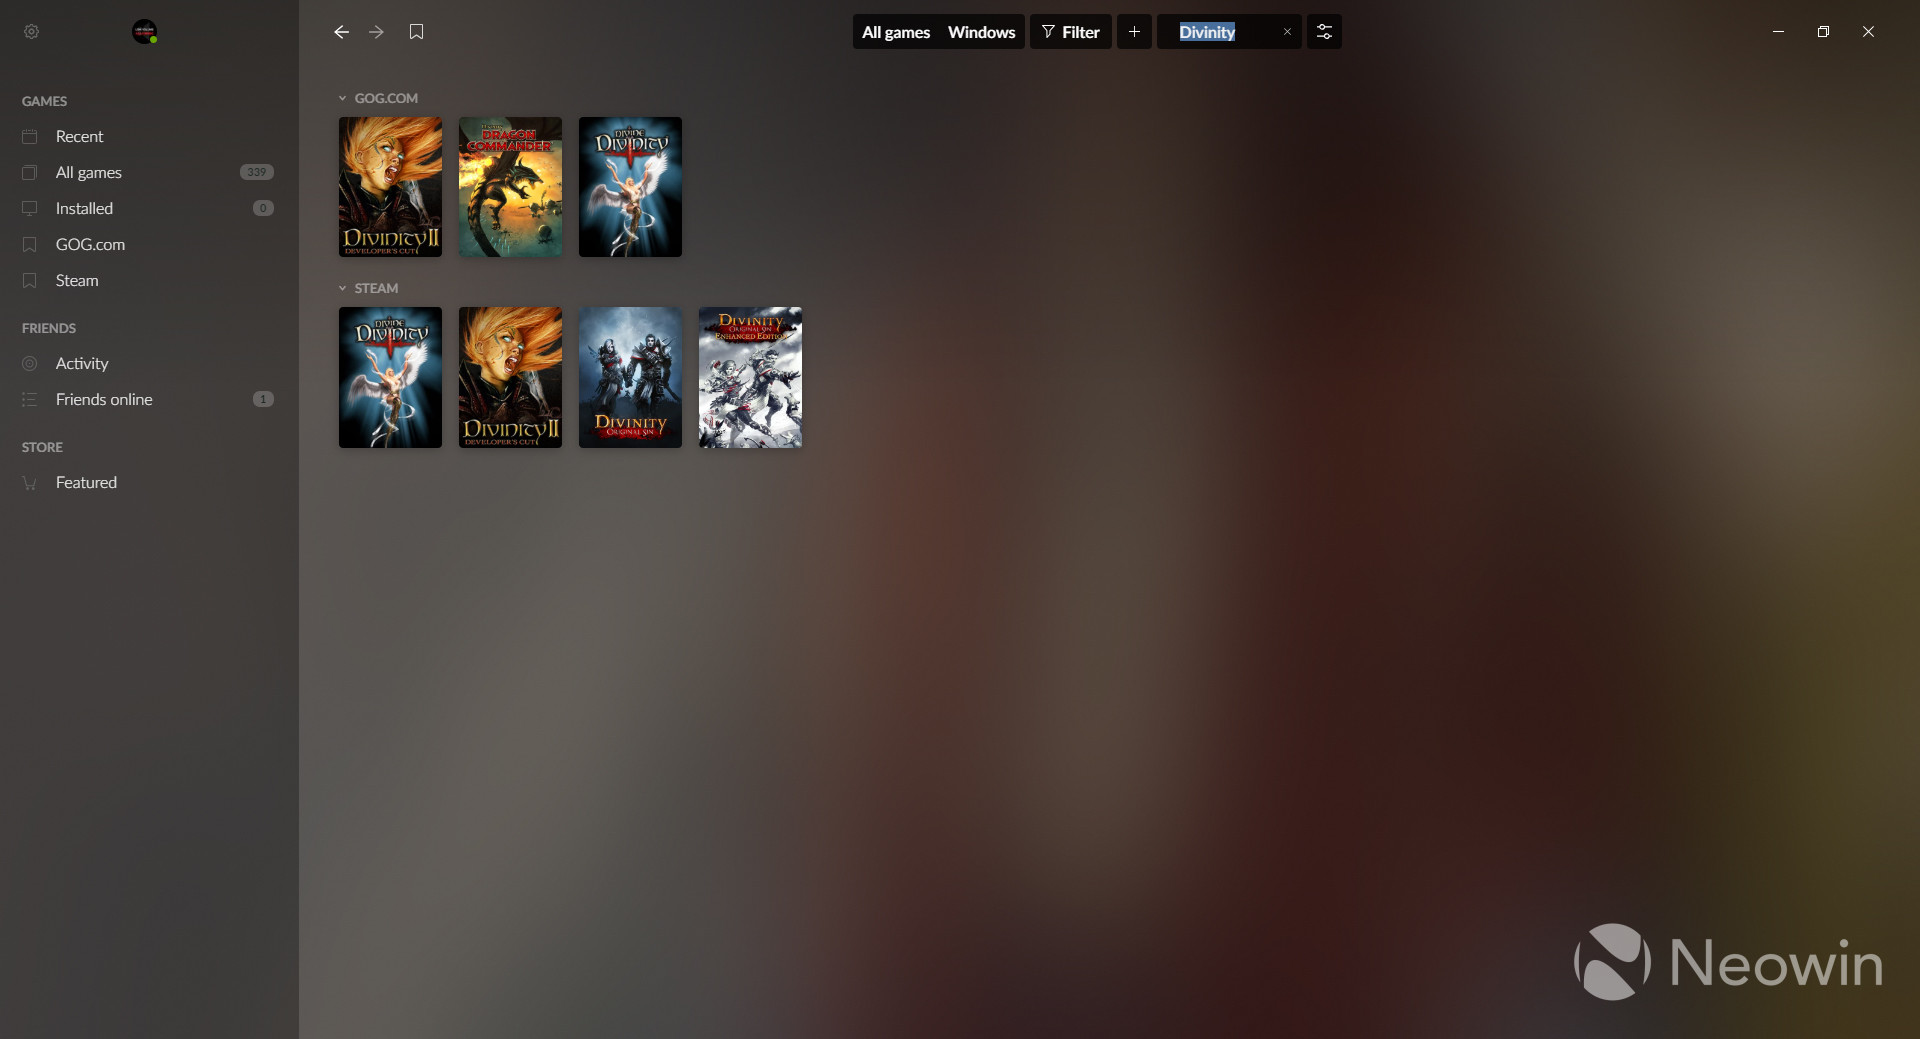 The closed beta for GOG Galaxy 2 0 is now live - Neowin